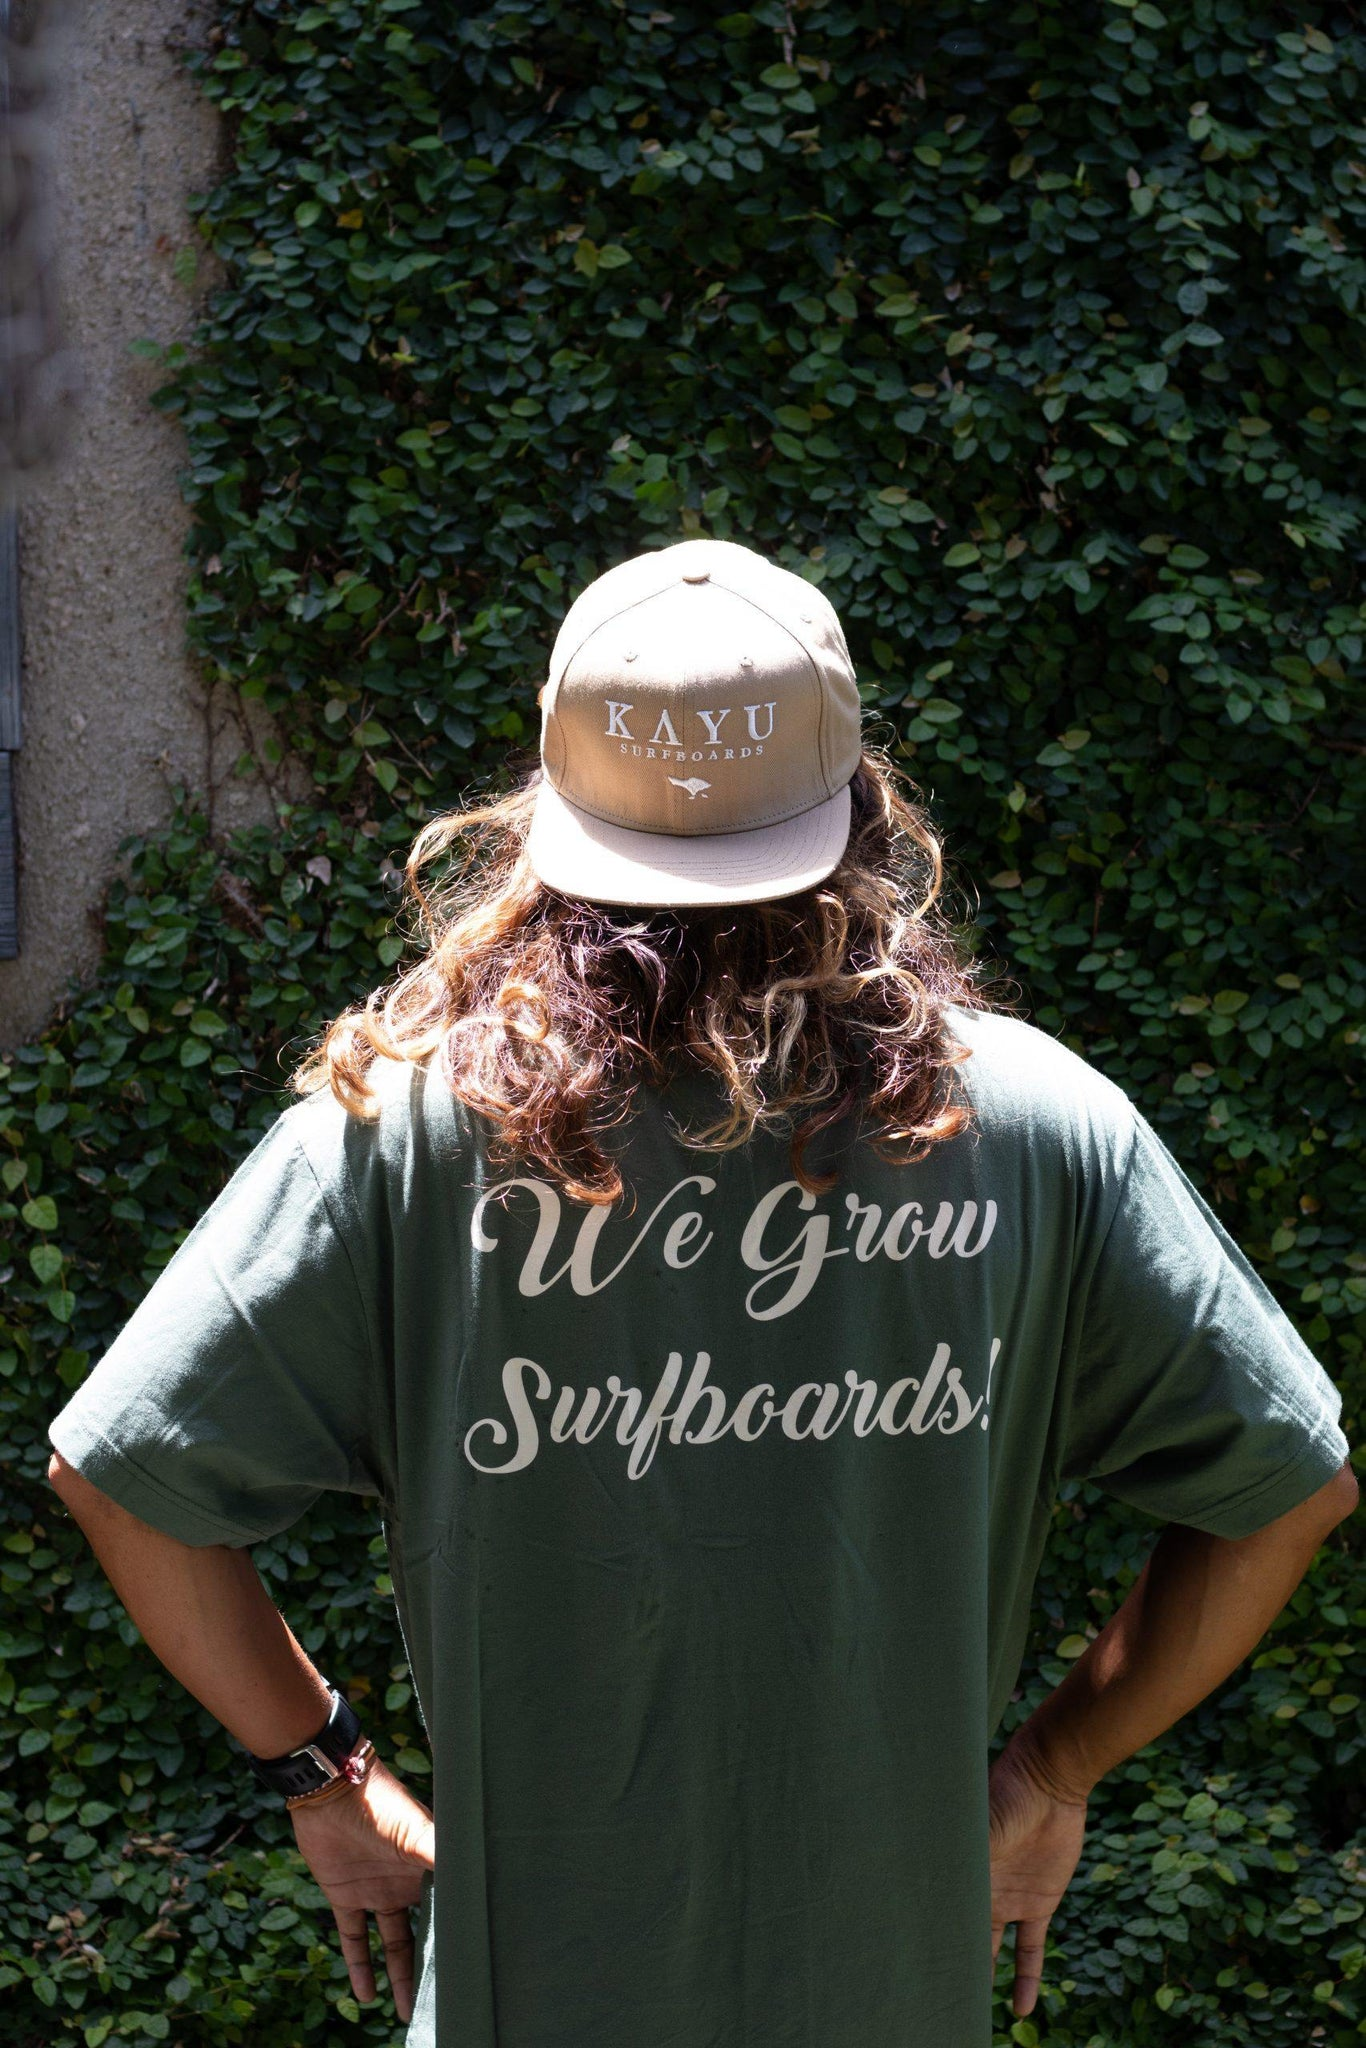 We Grow Surfboards! - Kayu Surfboards